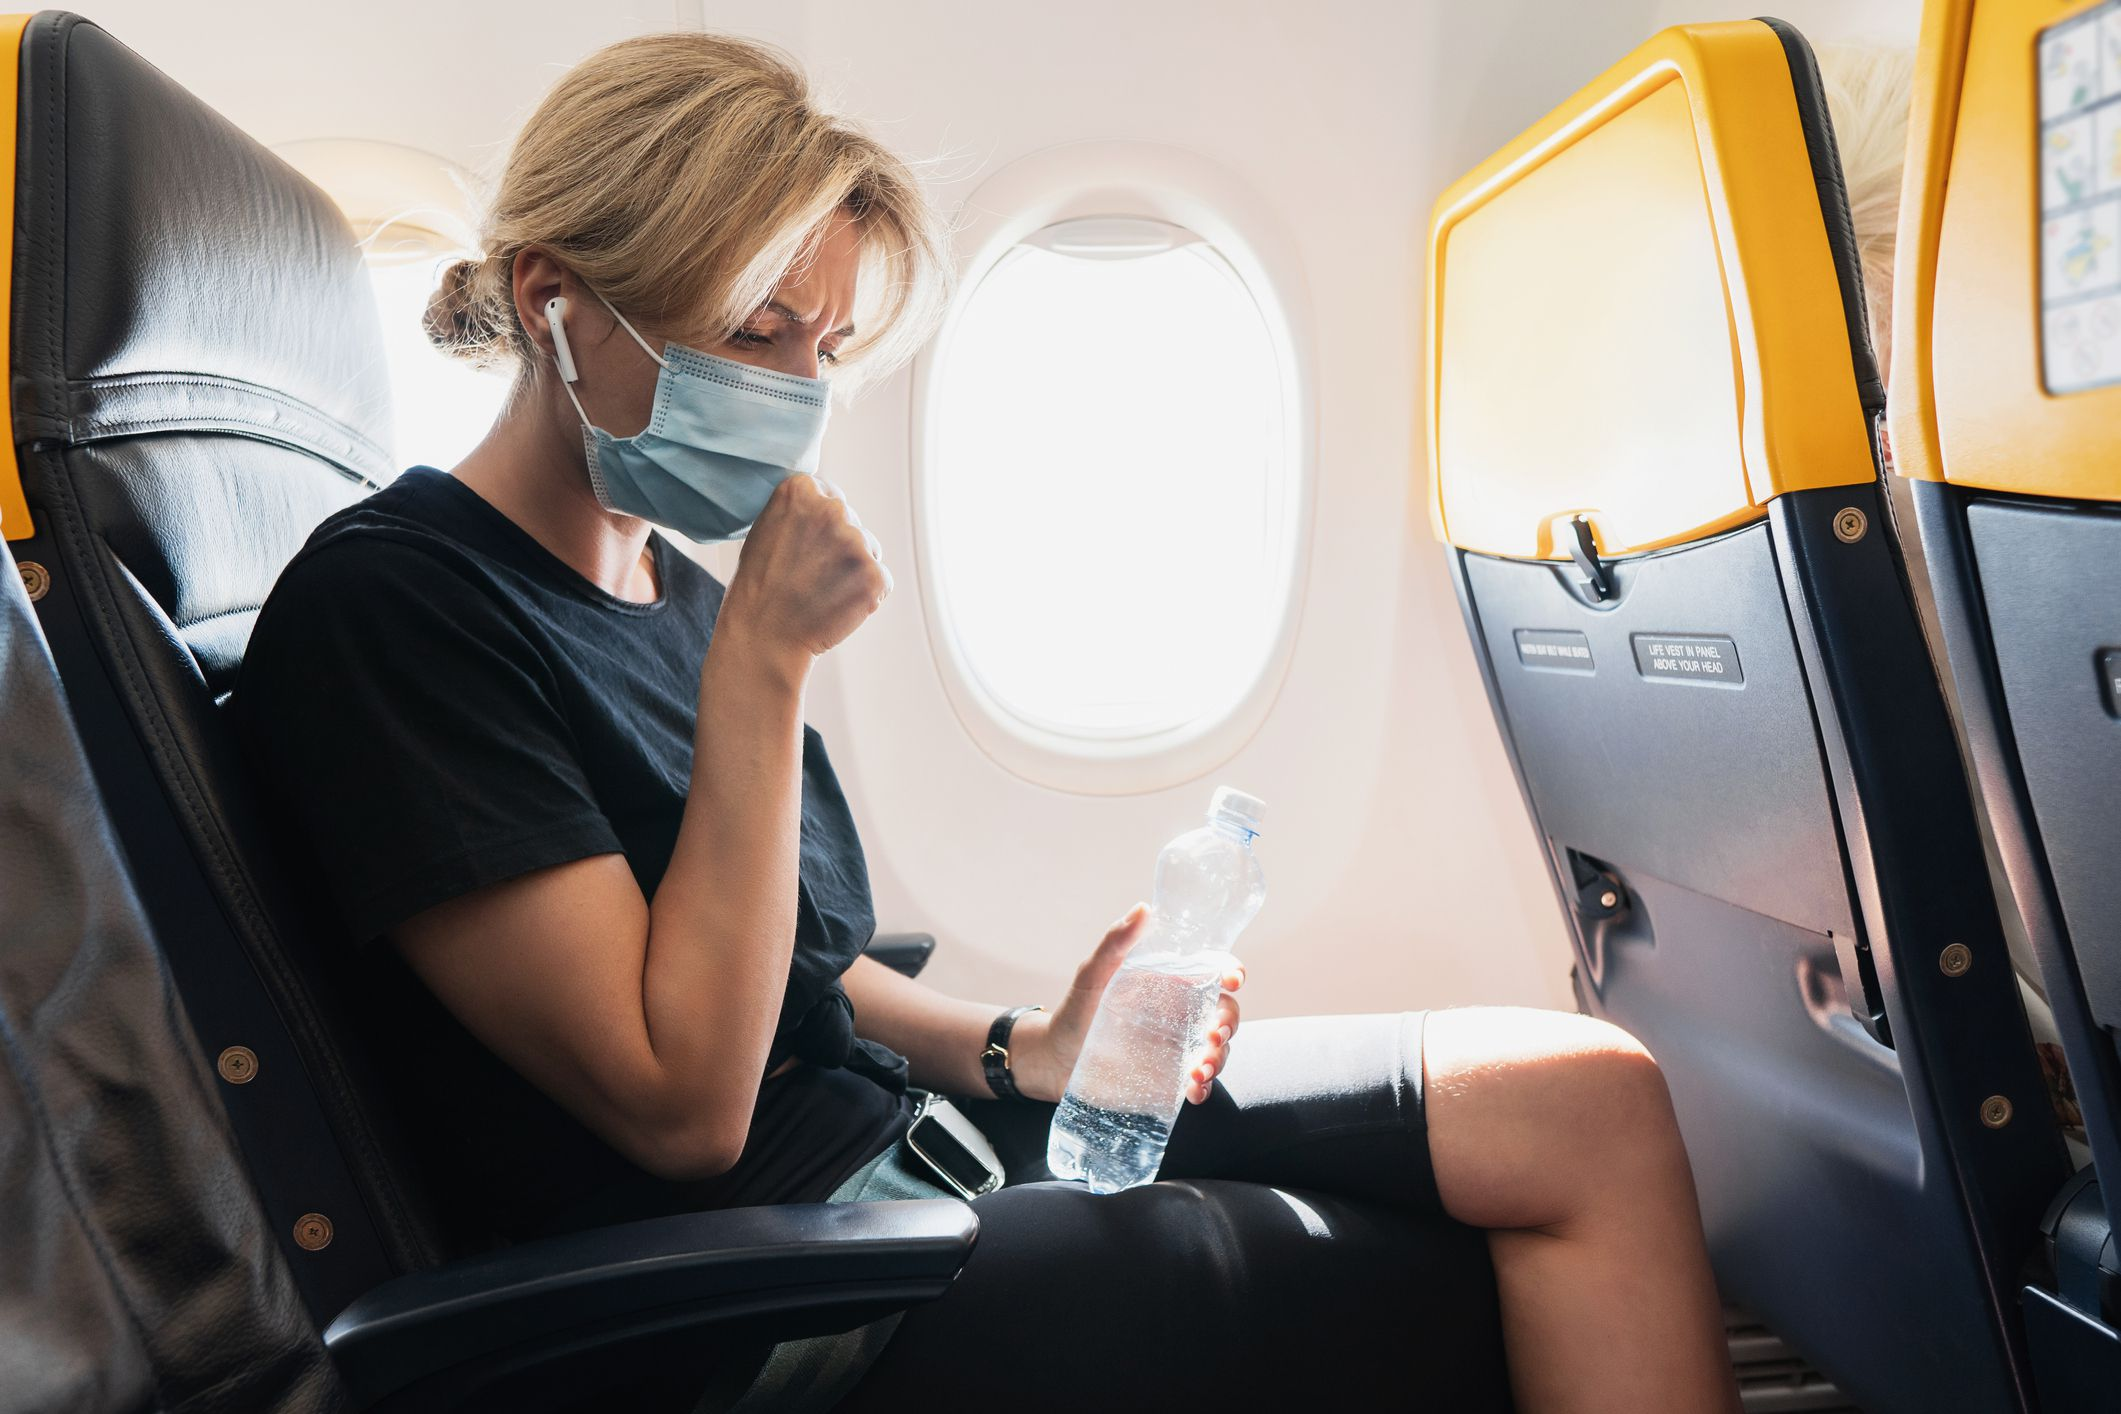 Pre-Flight Testing Is Not Preventing COVID-19 Spread on Airplanes